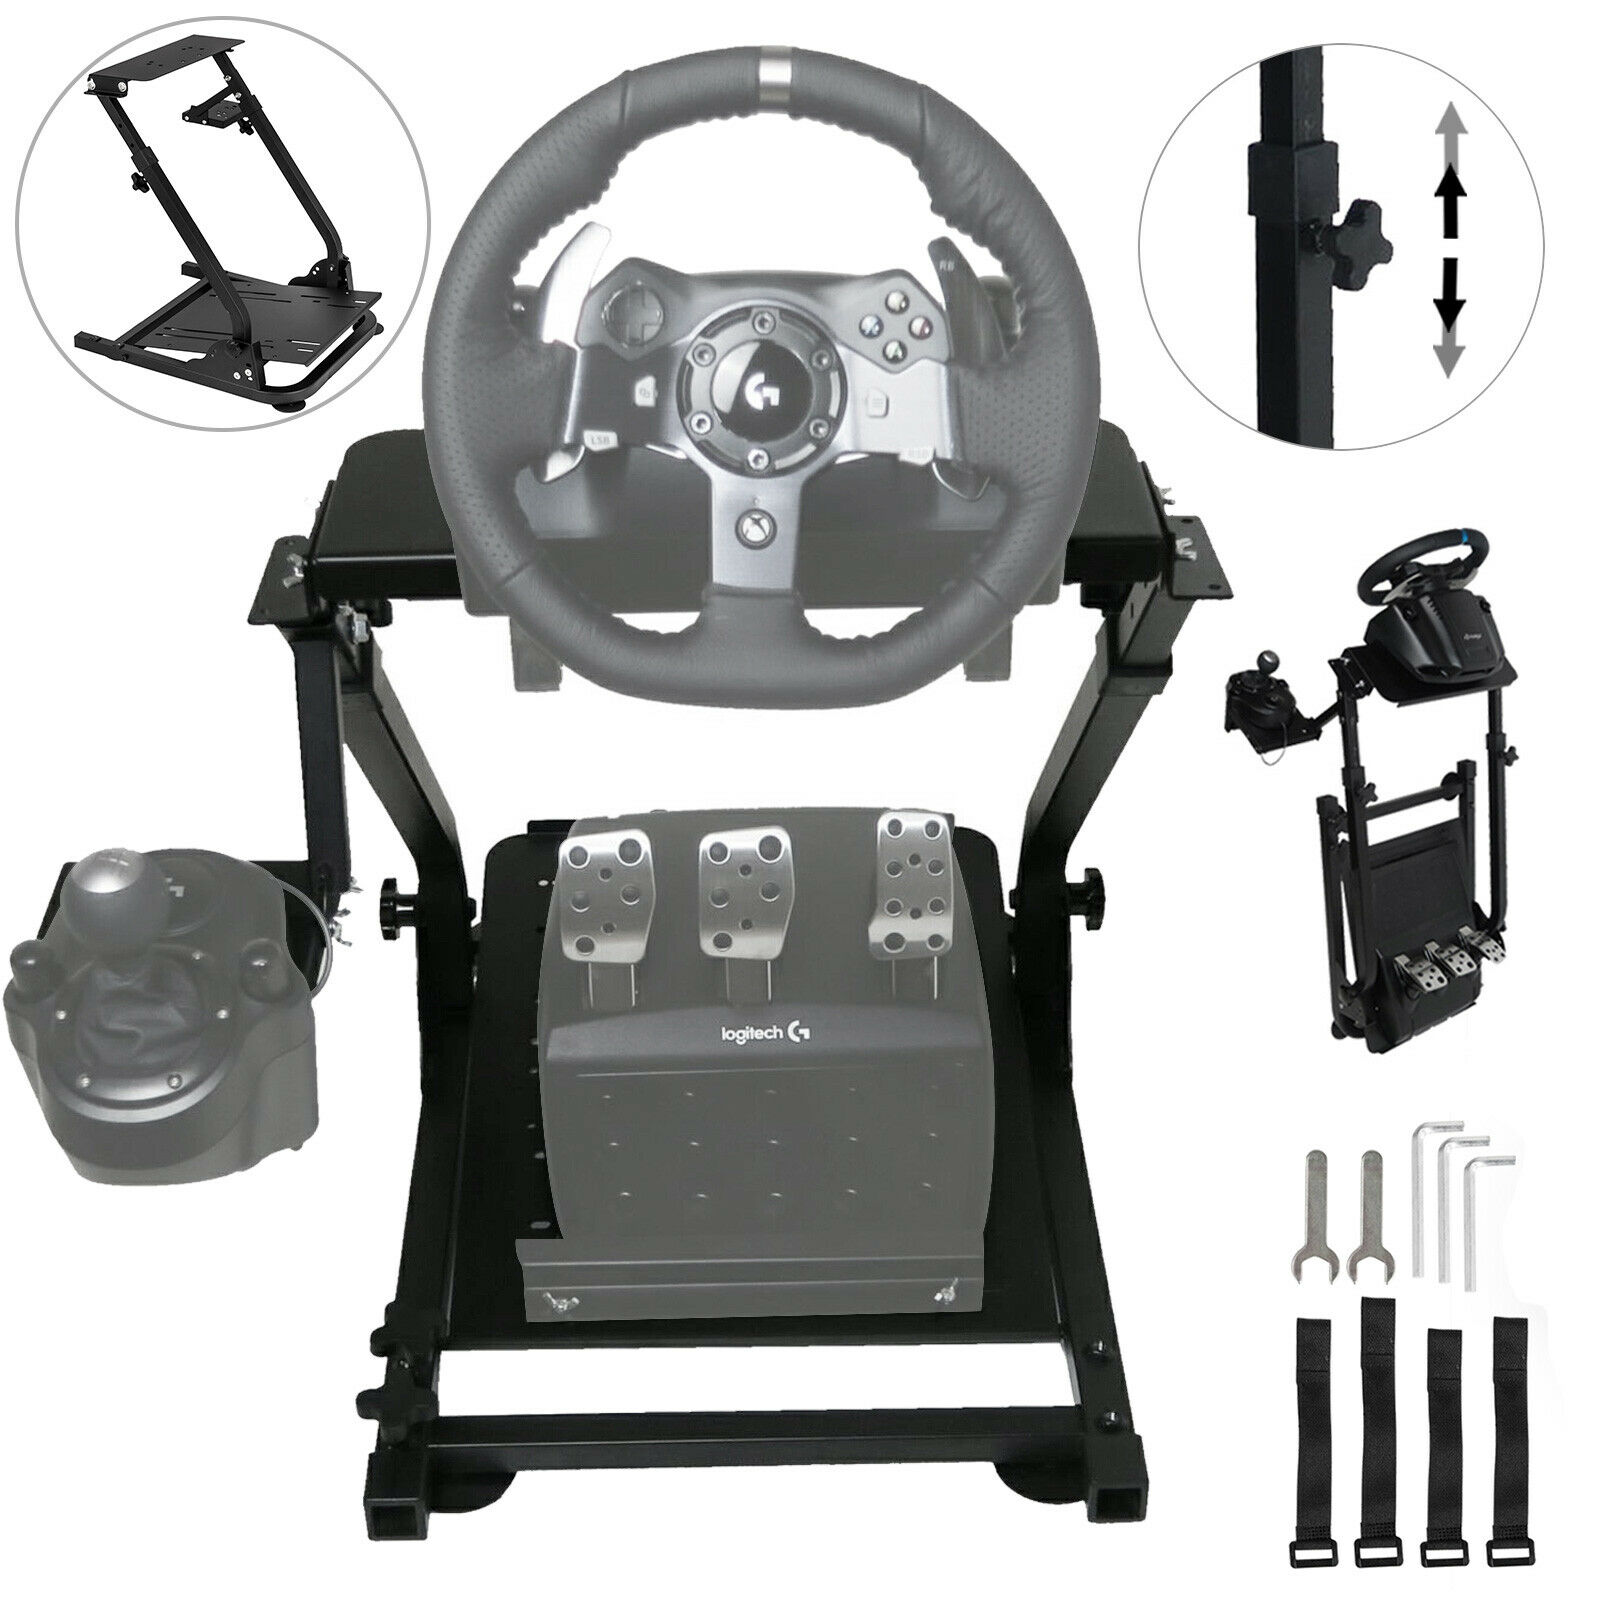 Self-Career Race Steering Wheel Support For Logitech G25 G27 G29 And G920 Folding Steering Wheel Stand Does Not Include Steering